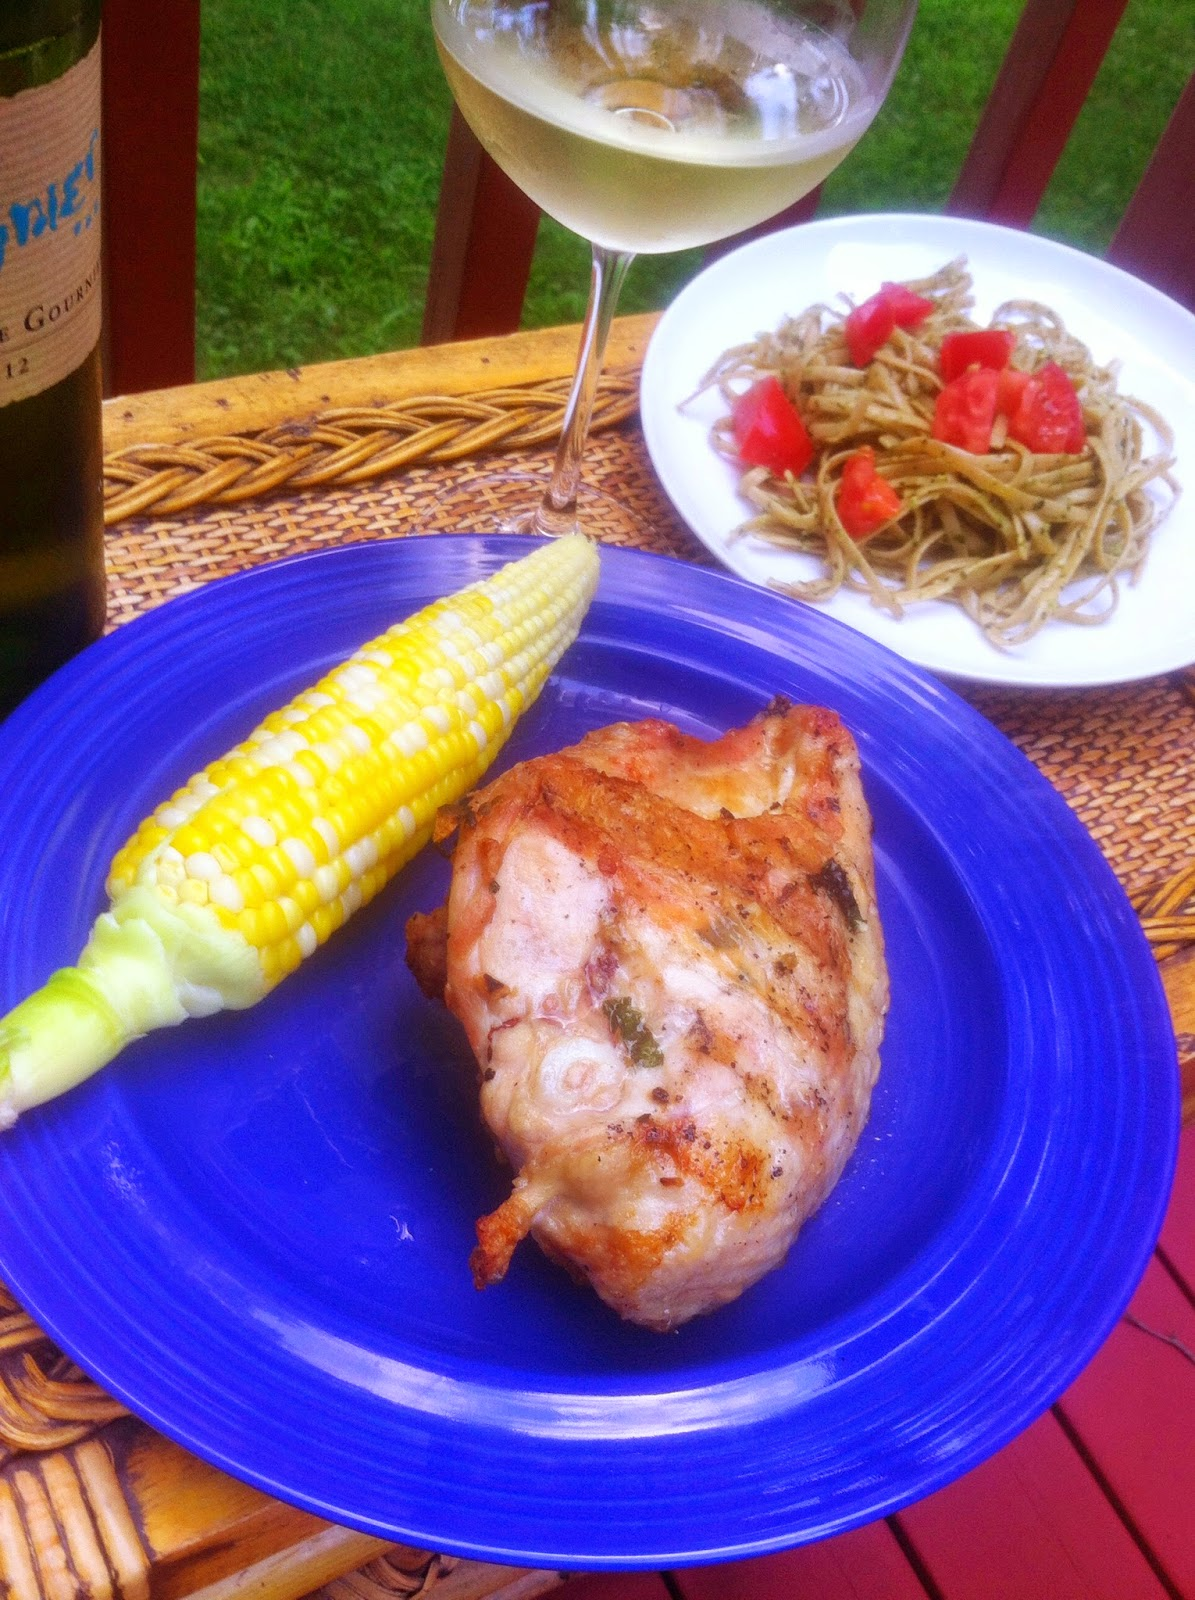 Simply Scrumptious Bone-In Grilled Chicken Breasts with side of corn, linguine and a Viogner.